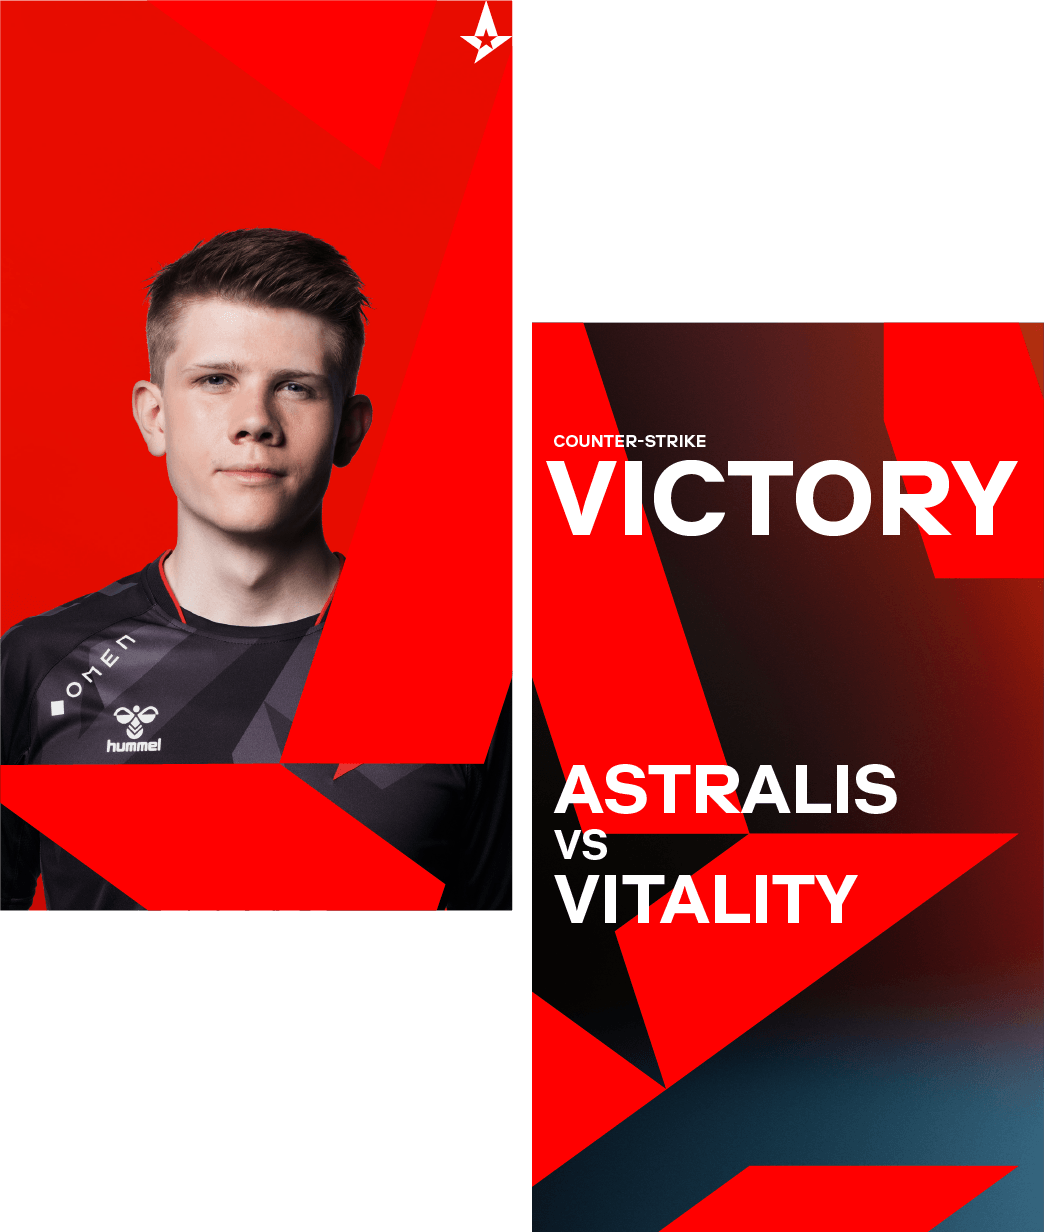 03-b-ASTRALIS-GRAPHIC-dual-victory-graphic-8